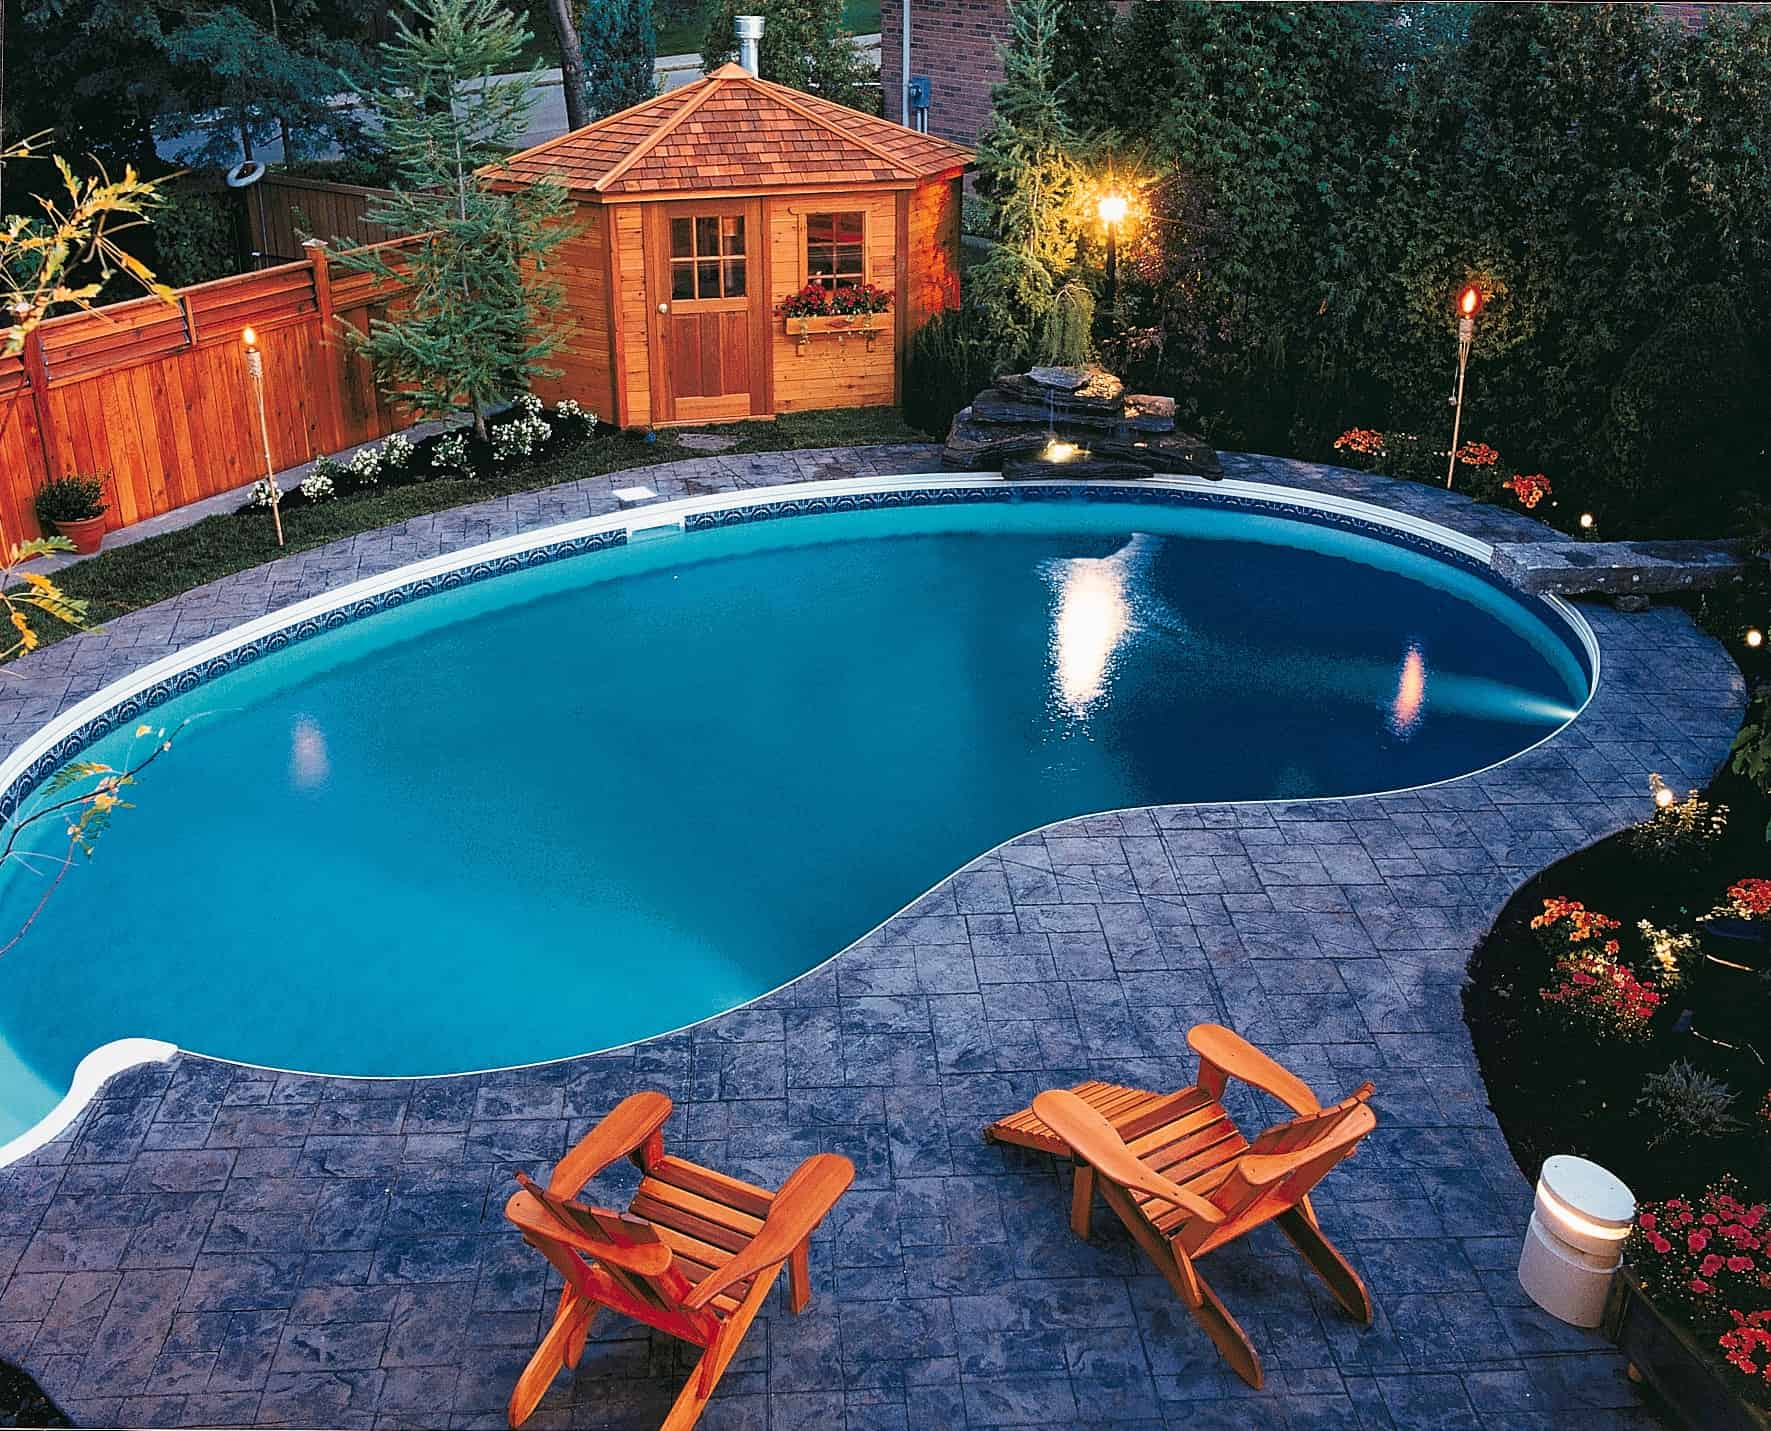 Catalina Pool House - Summerwood Products